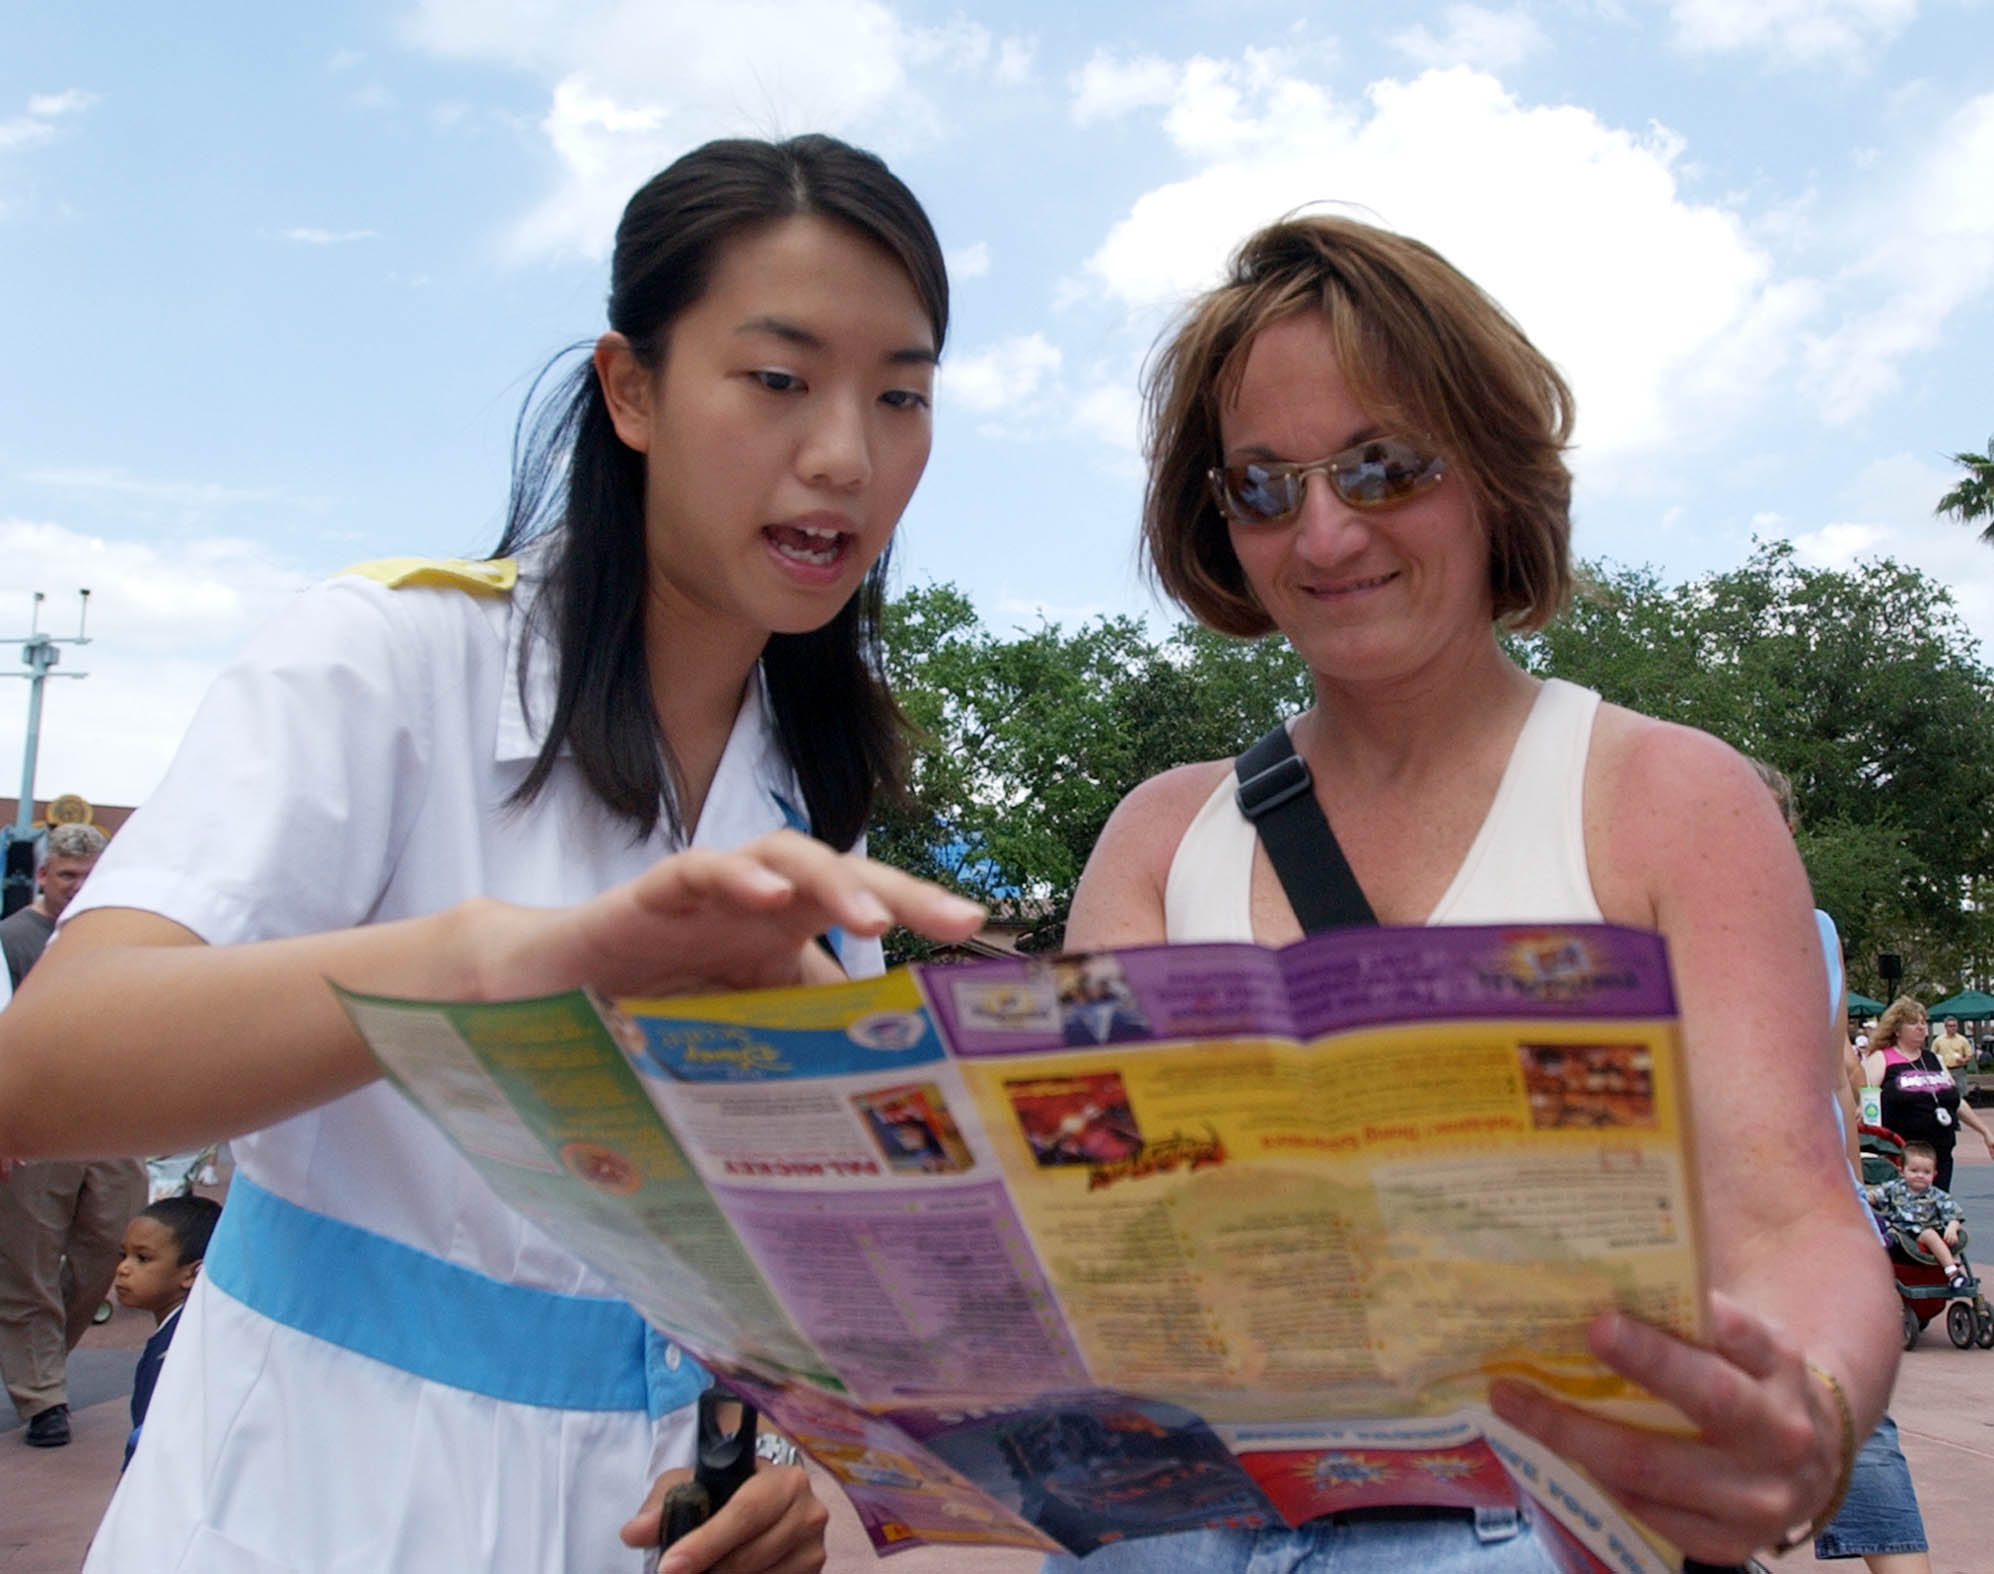 <div class='meta'><div class='origin-logo' data-origin='none'></div><span class='caption-text' data-credit='AP Photo/Peter Cosgrove'>Virginia Li, of Hong Kong, left, assists Epcot guest Gloria DeRonne, with directions at the park in Lake Buena Vista, Fla. Monday, April 12, 2005.</span></div>